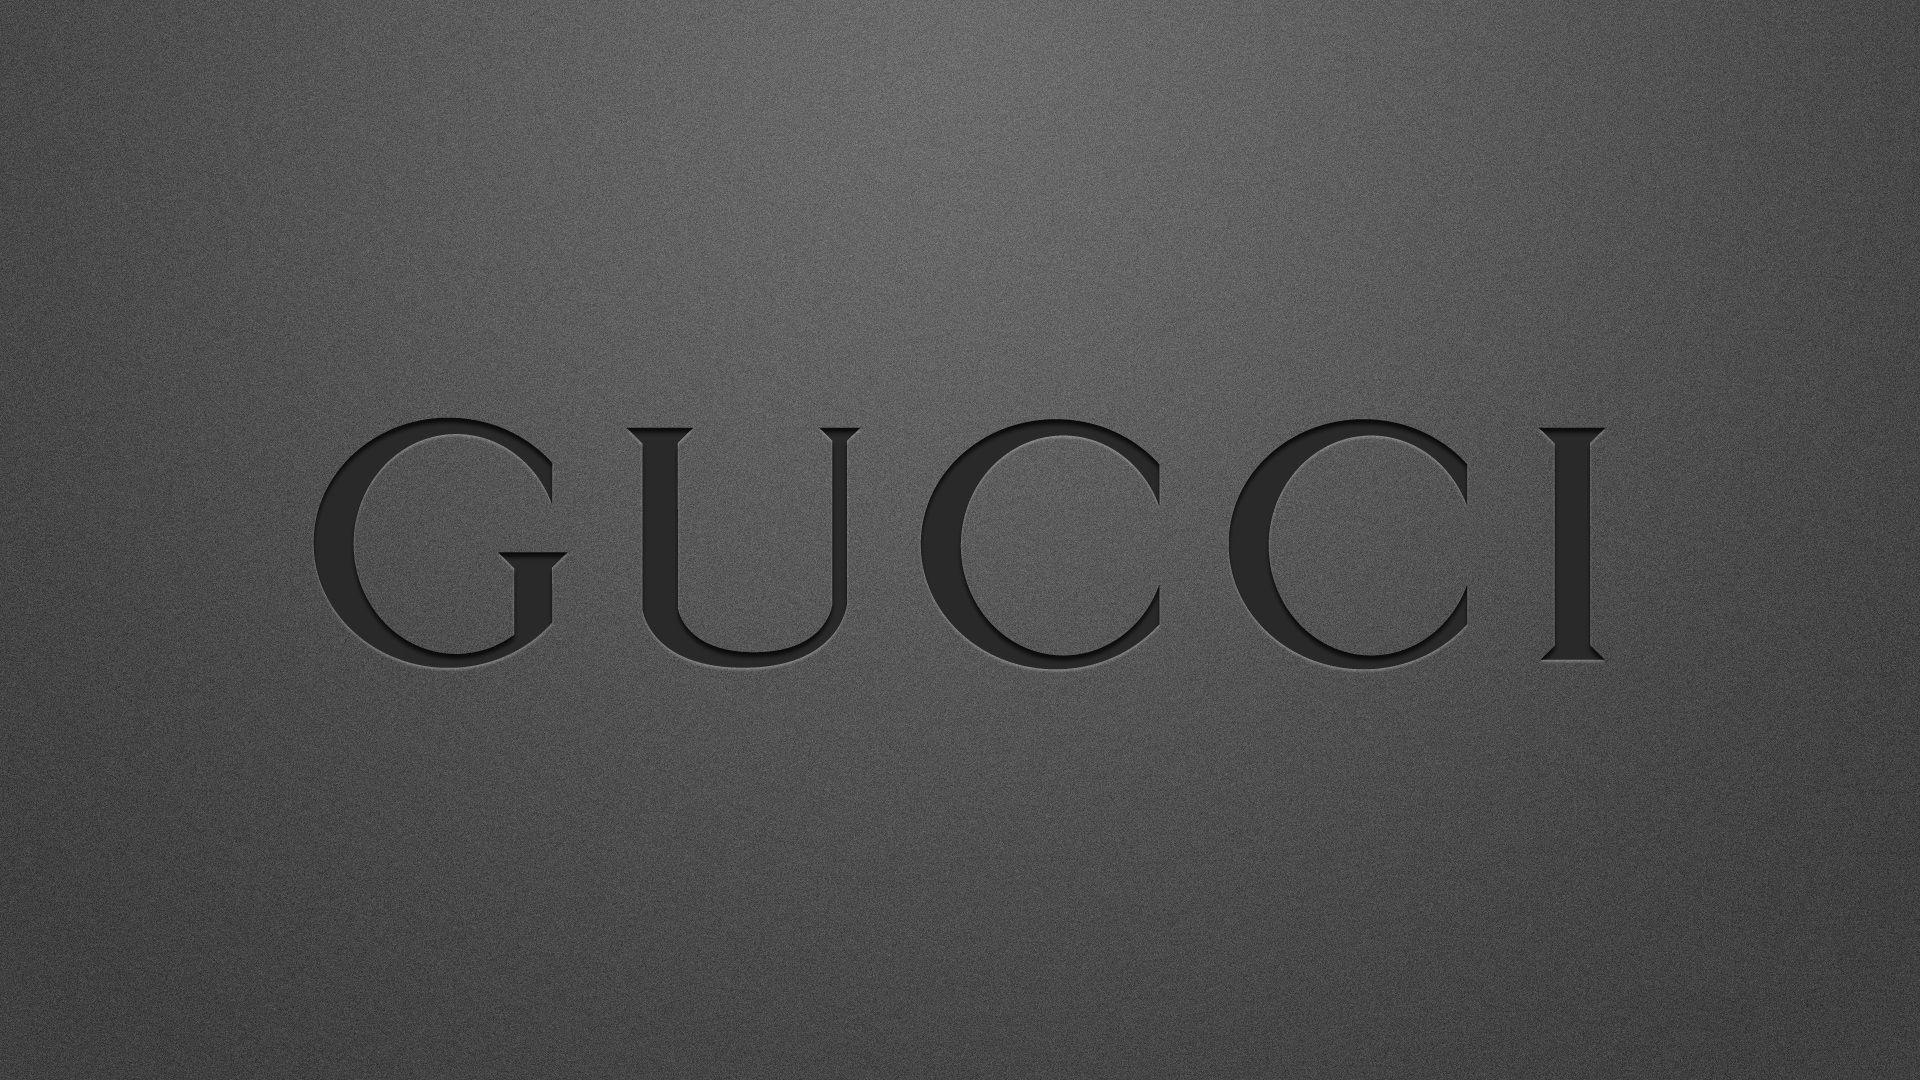 Gucci Wallpapers & Pictures | Hd Wallpapers